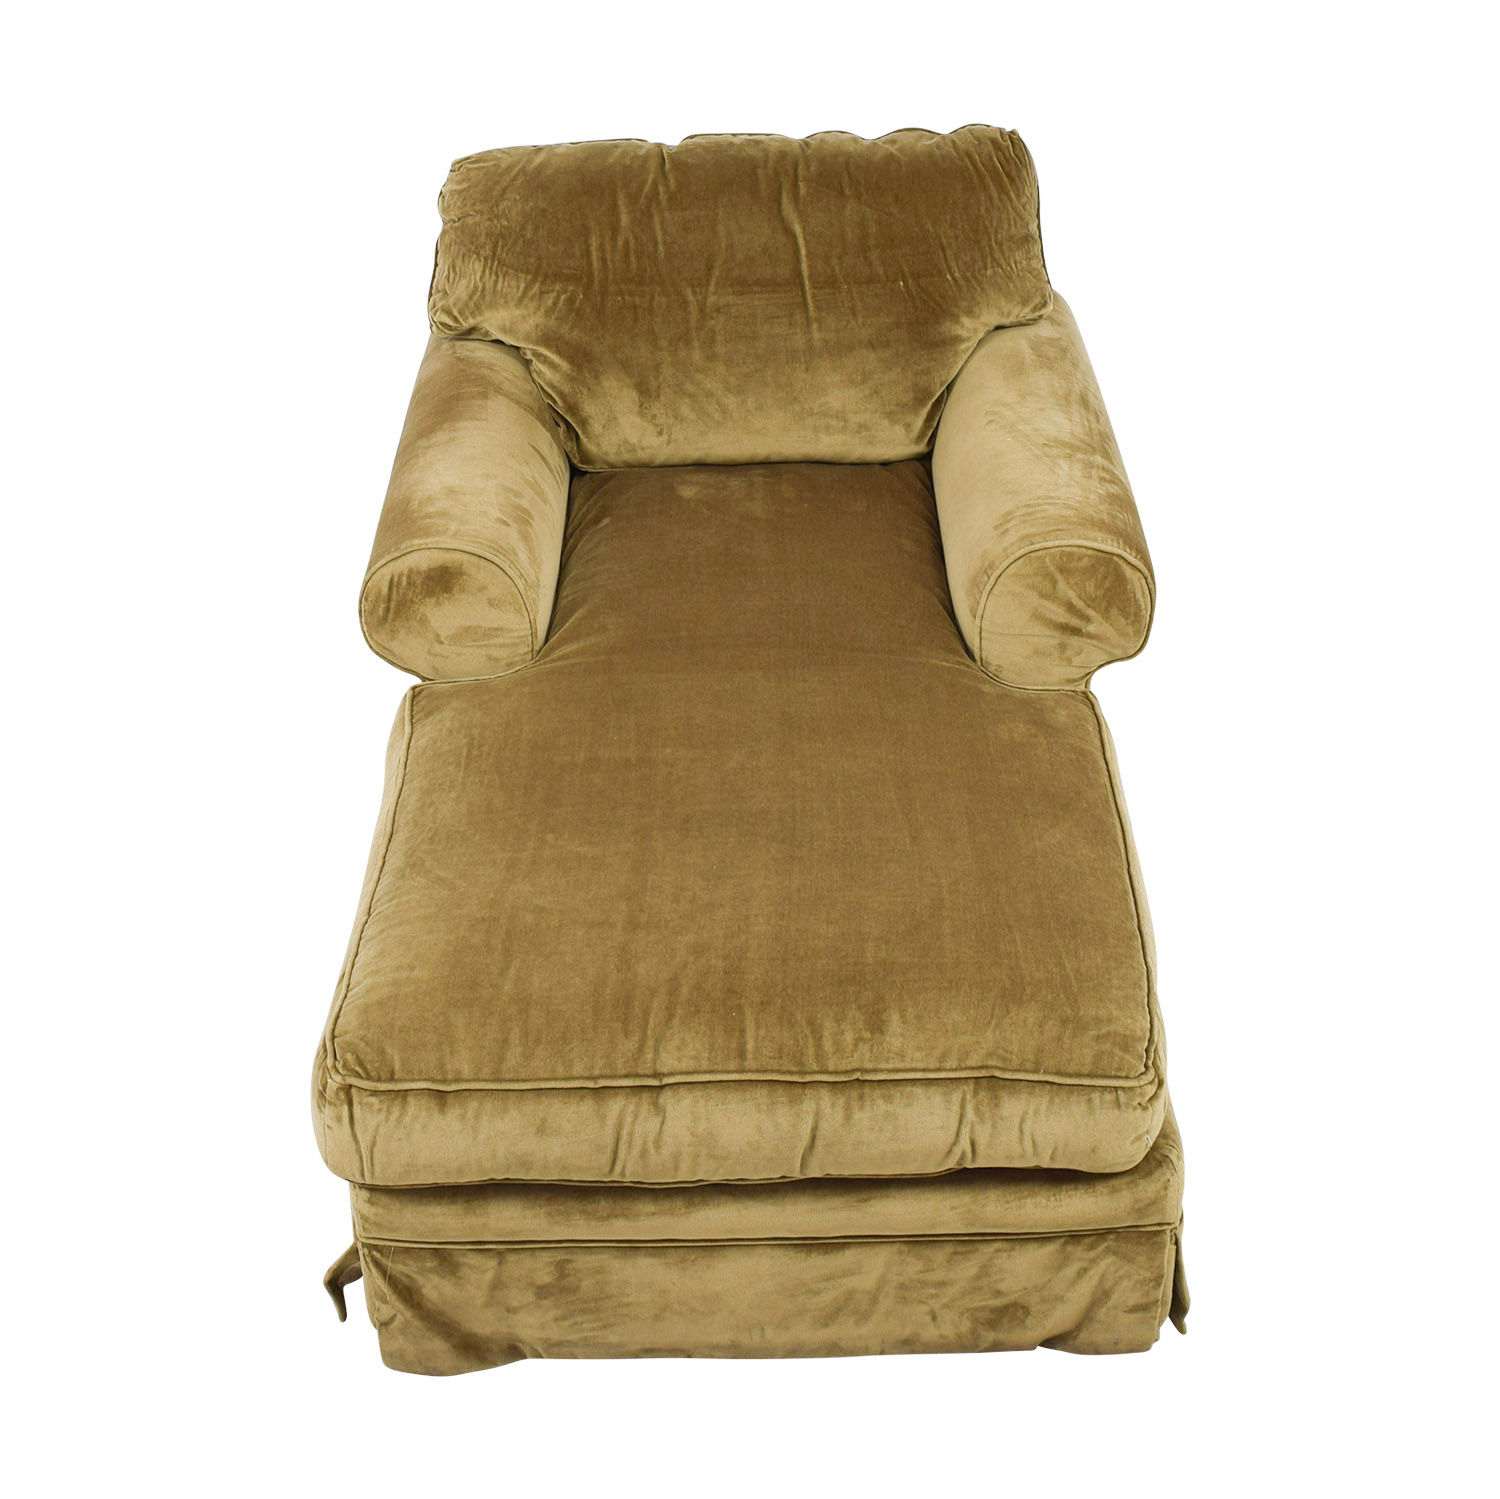 shop Einstein Moomjy Tan Chaise Einstein Moomjy Chaises